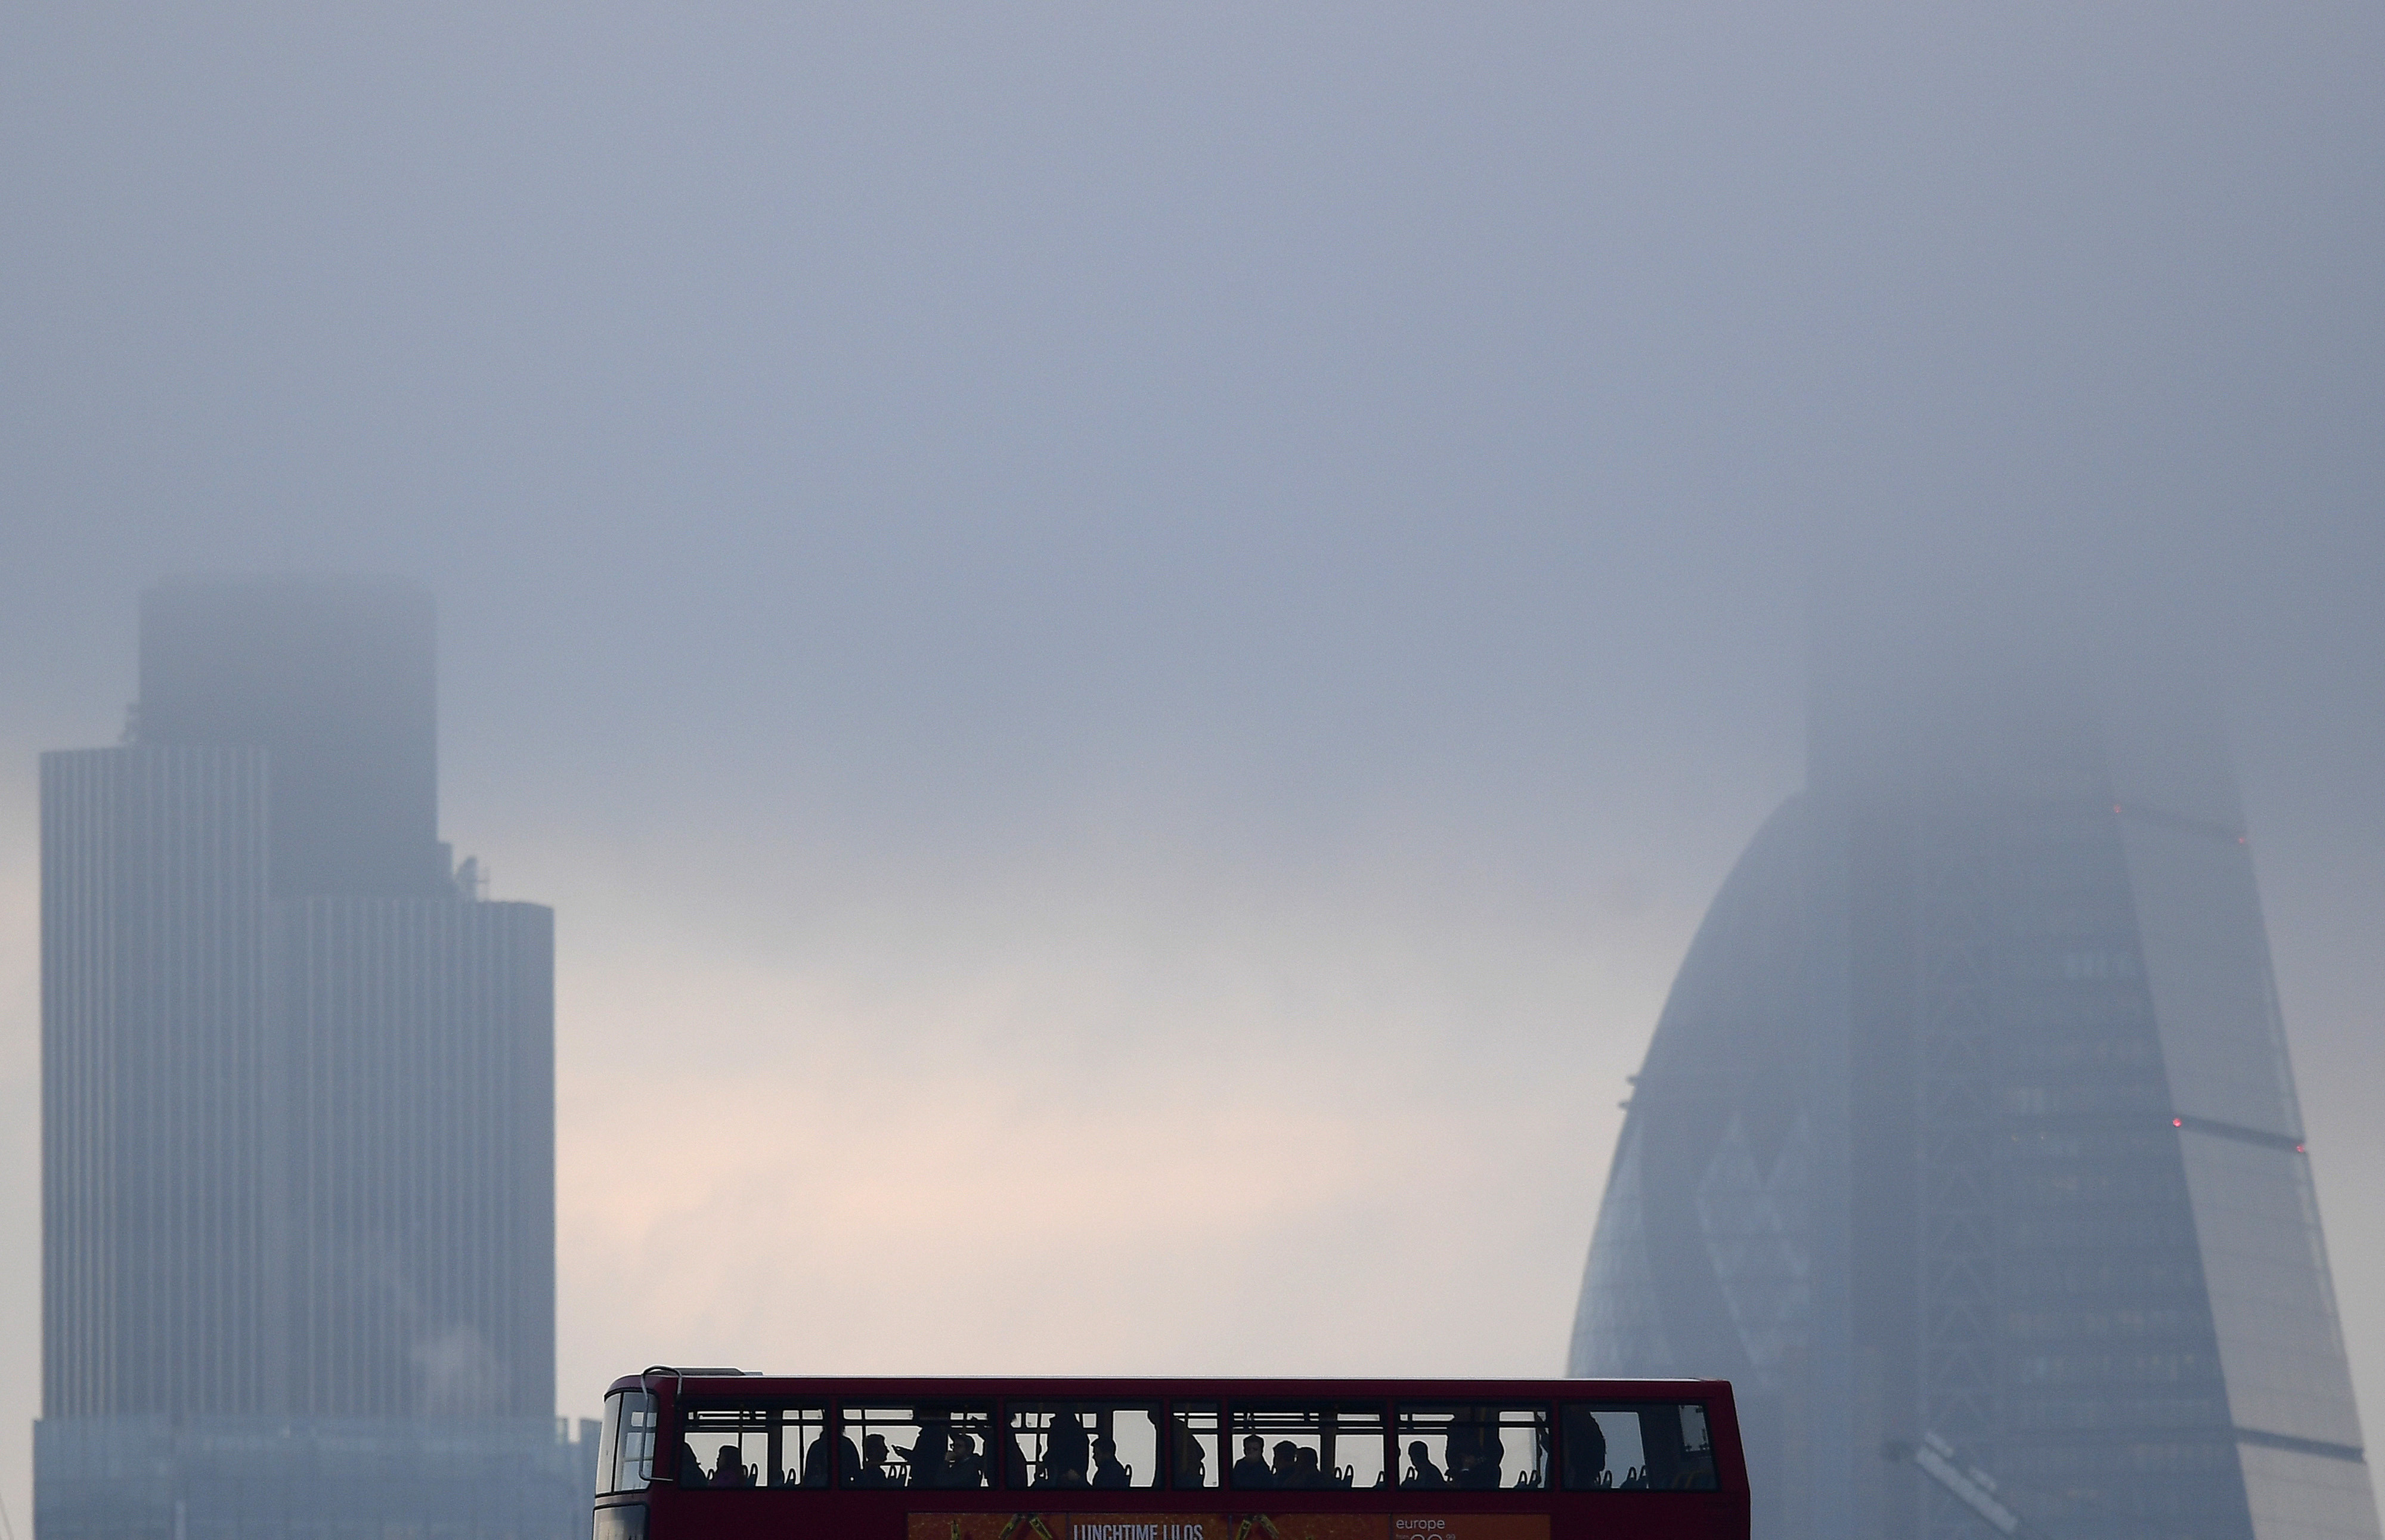 City workers cross the River Thames with the City of London financial district seen behind in London, in Britain October 27, 2016. REUTERS/Toby Melville - LR1ECAR0Q5EH9